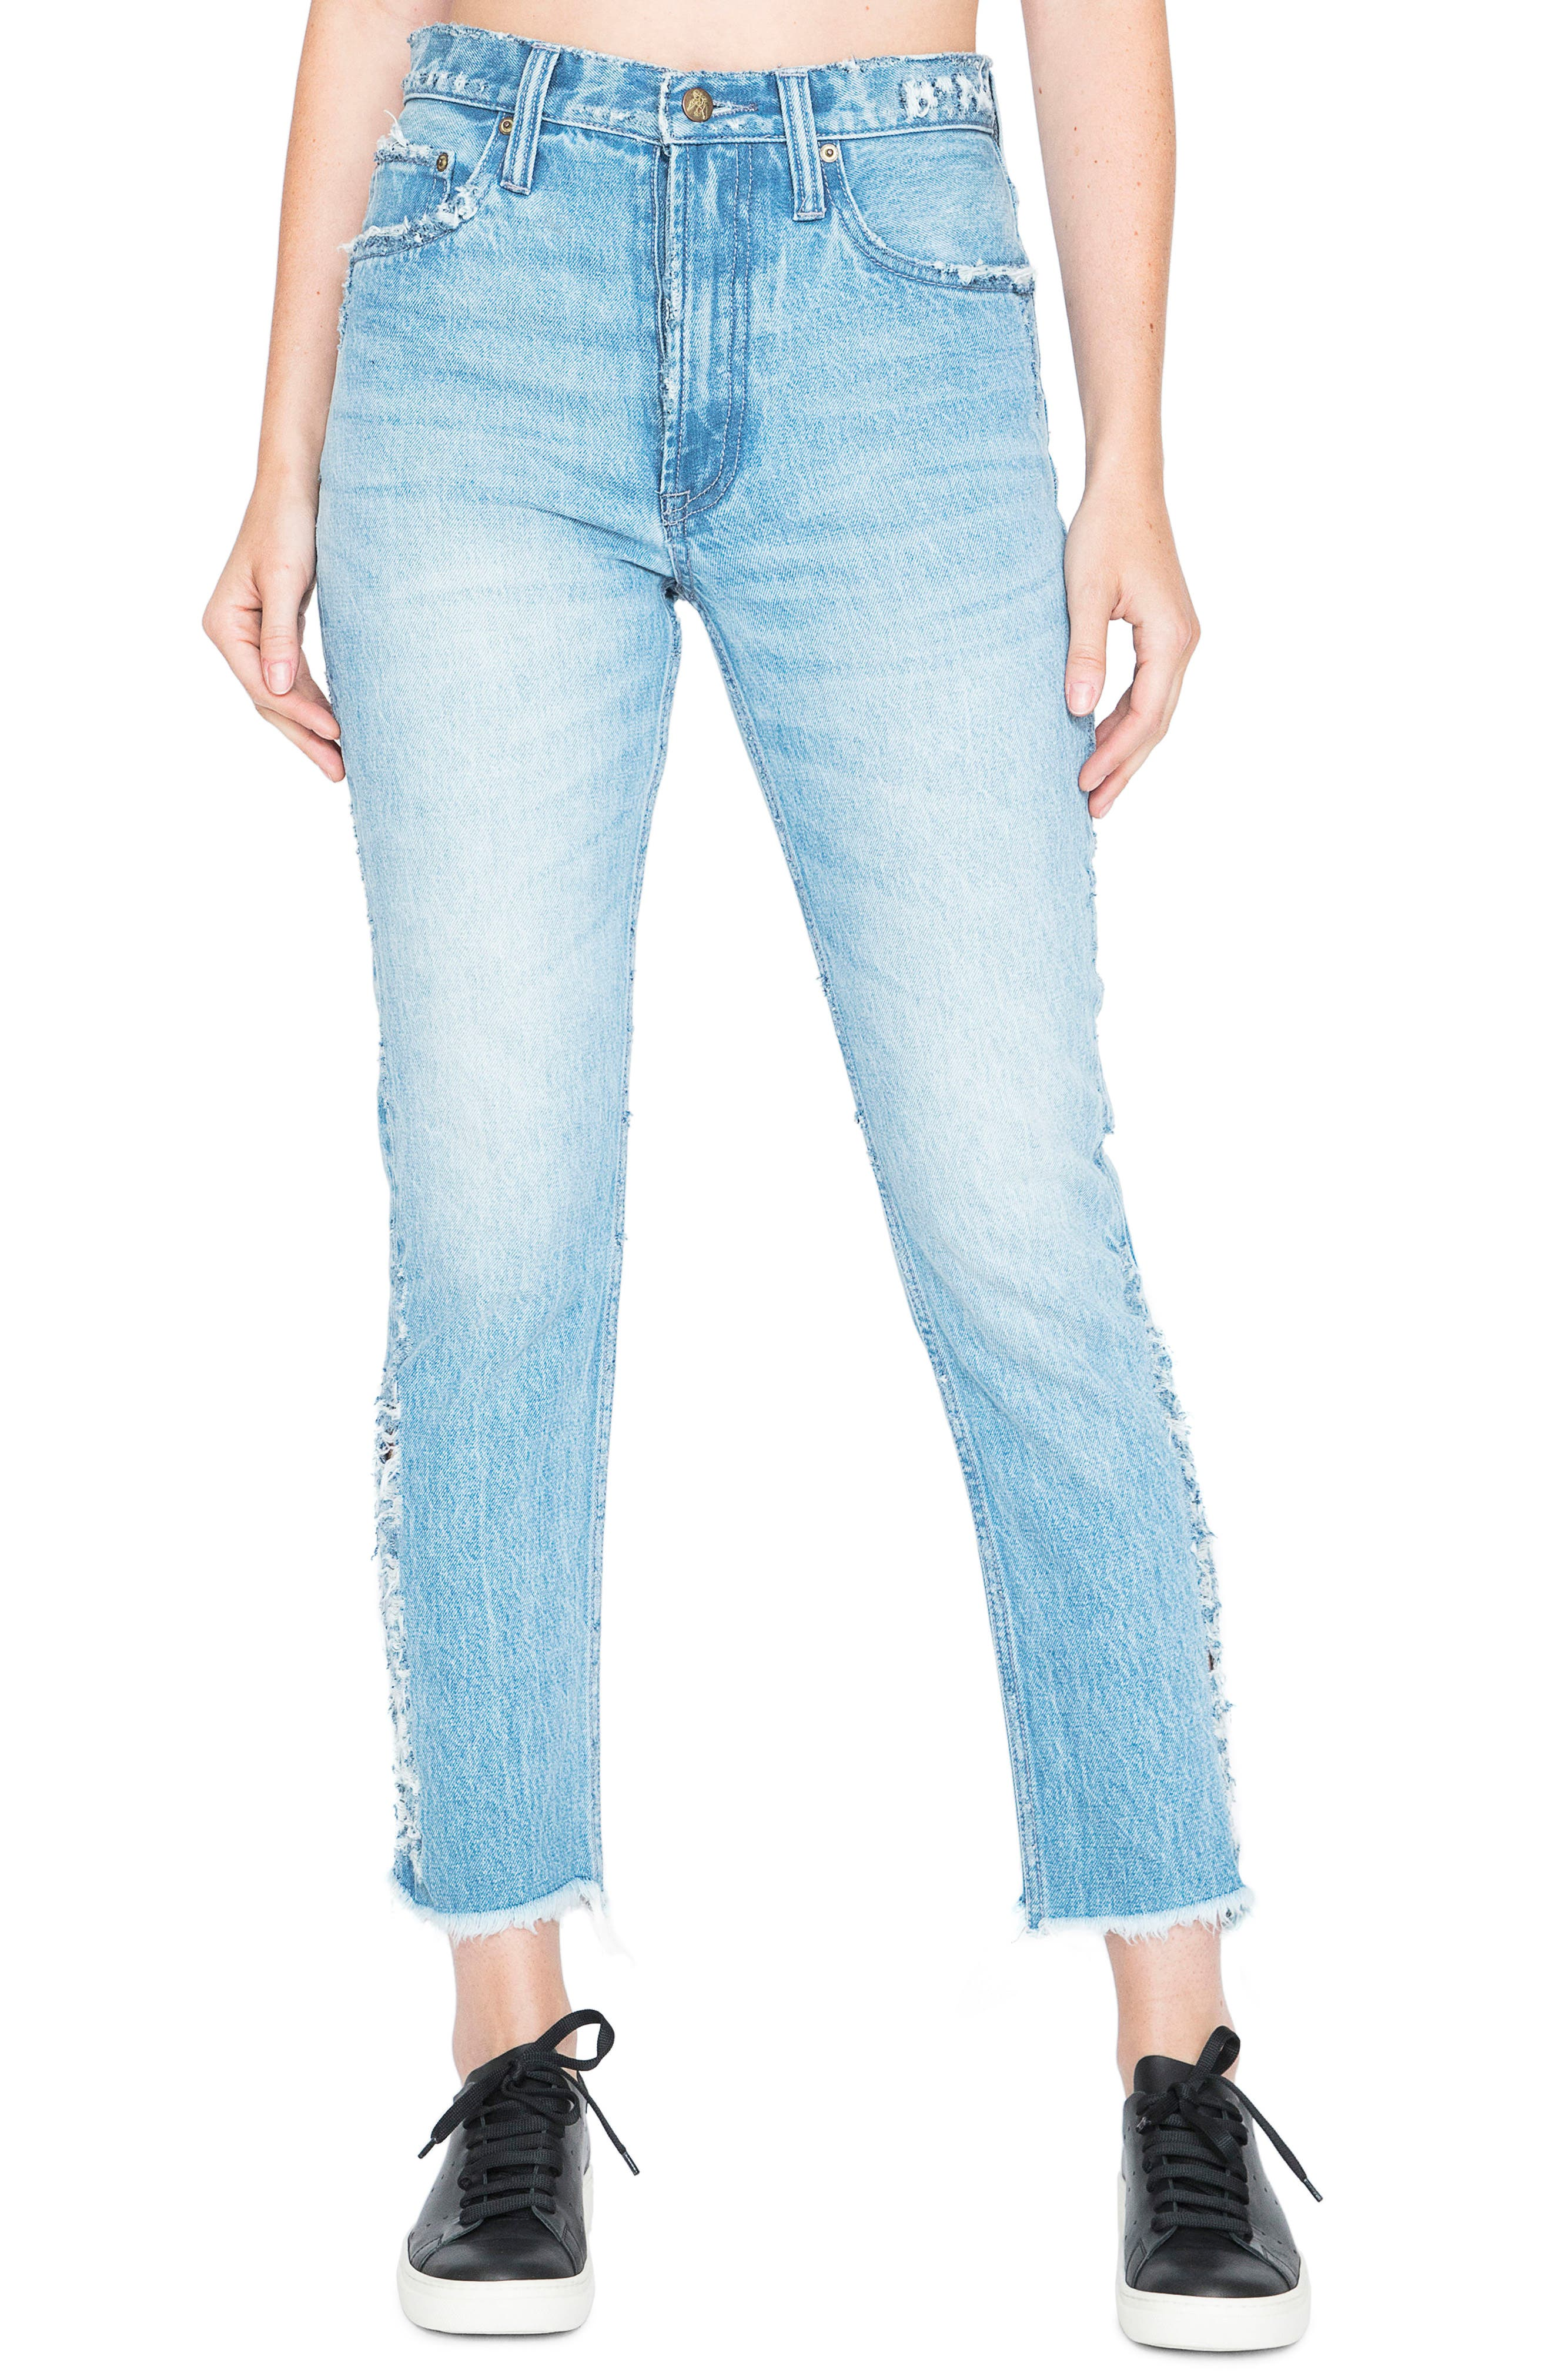 AMX Side Fray High Waist Ankle Jeans,                         Main,                         color, 426